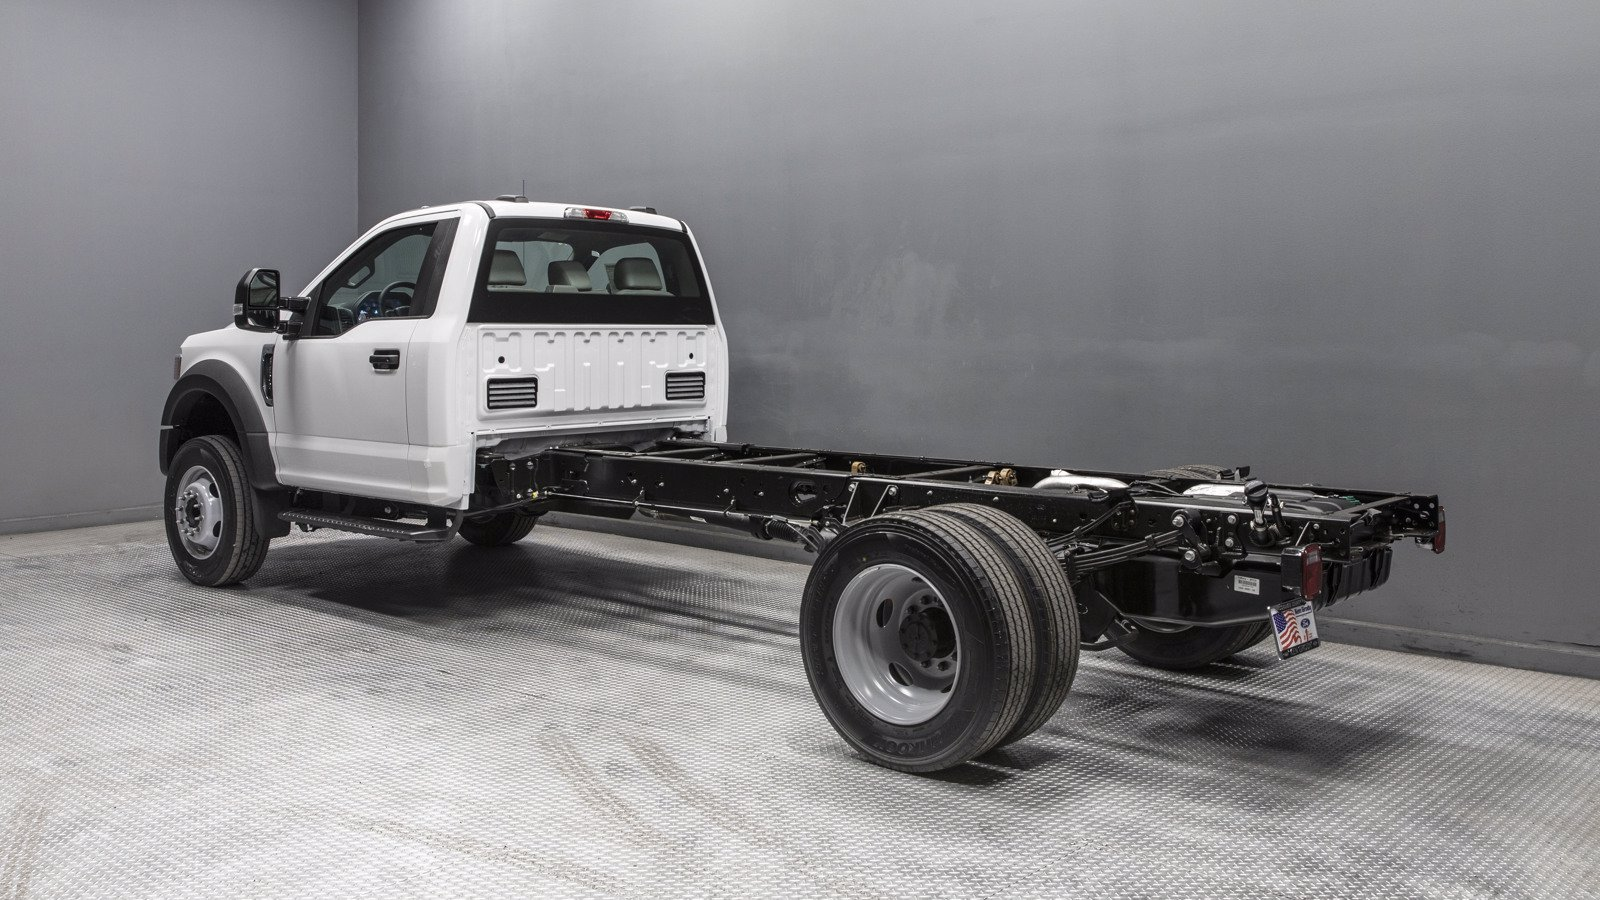 2020 Ford F-600 Regular Cab DRW 4x2, Cab Chassis #04145 - photo 1